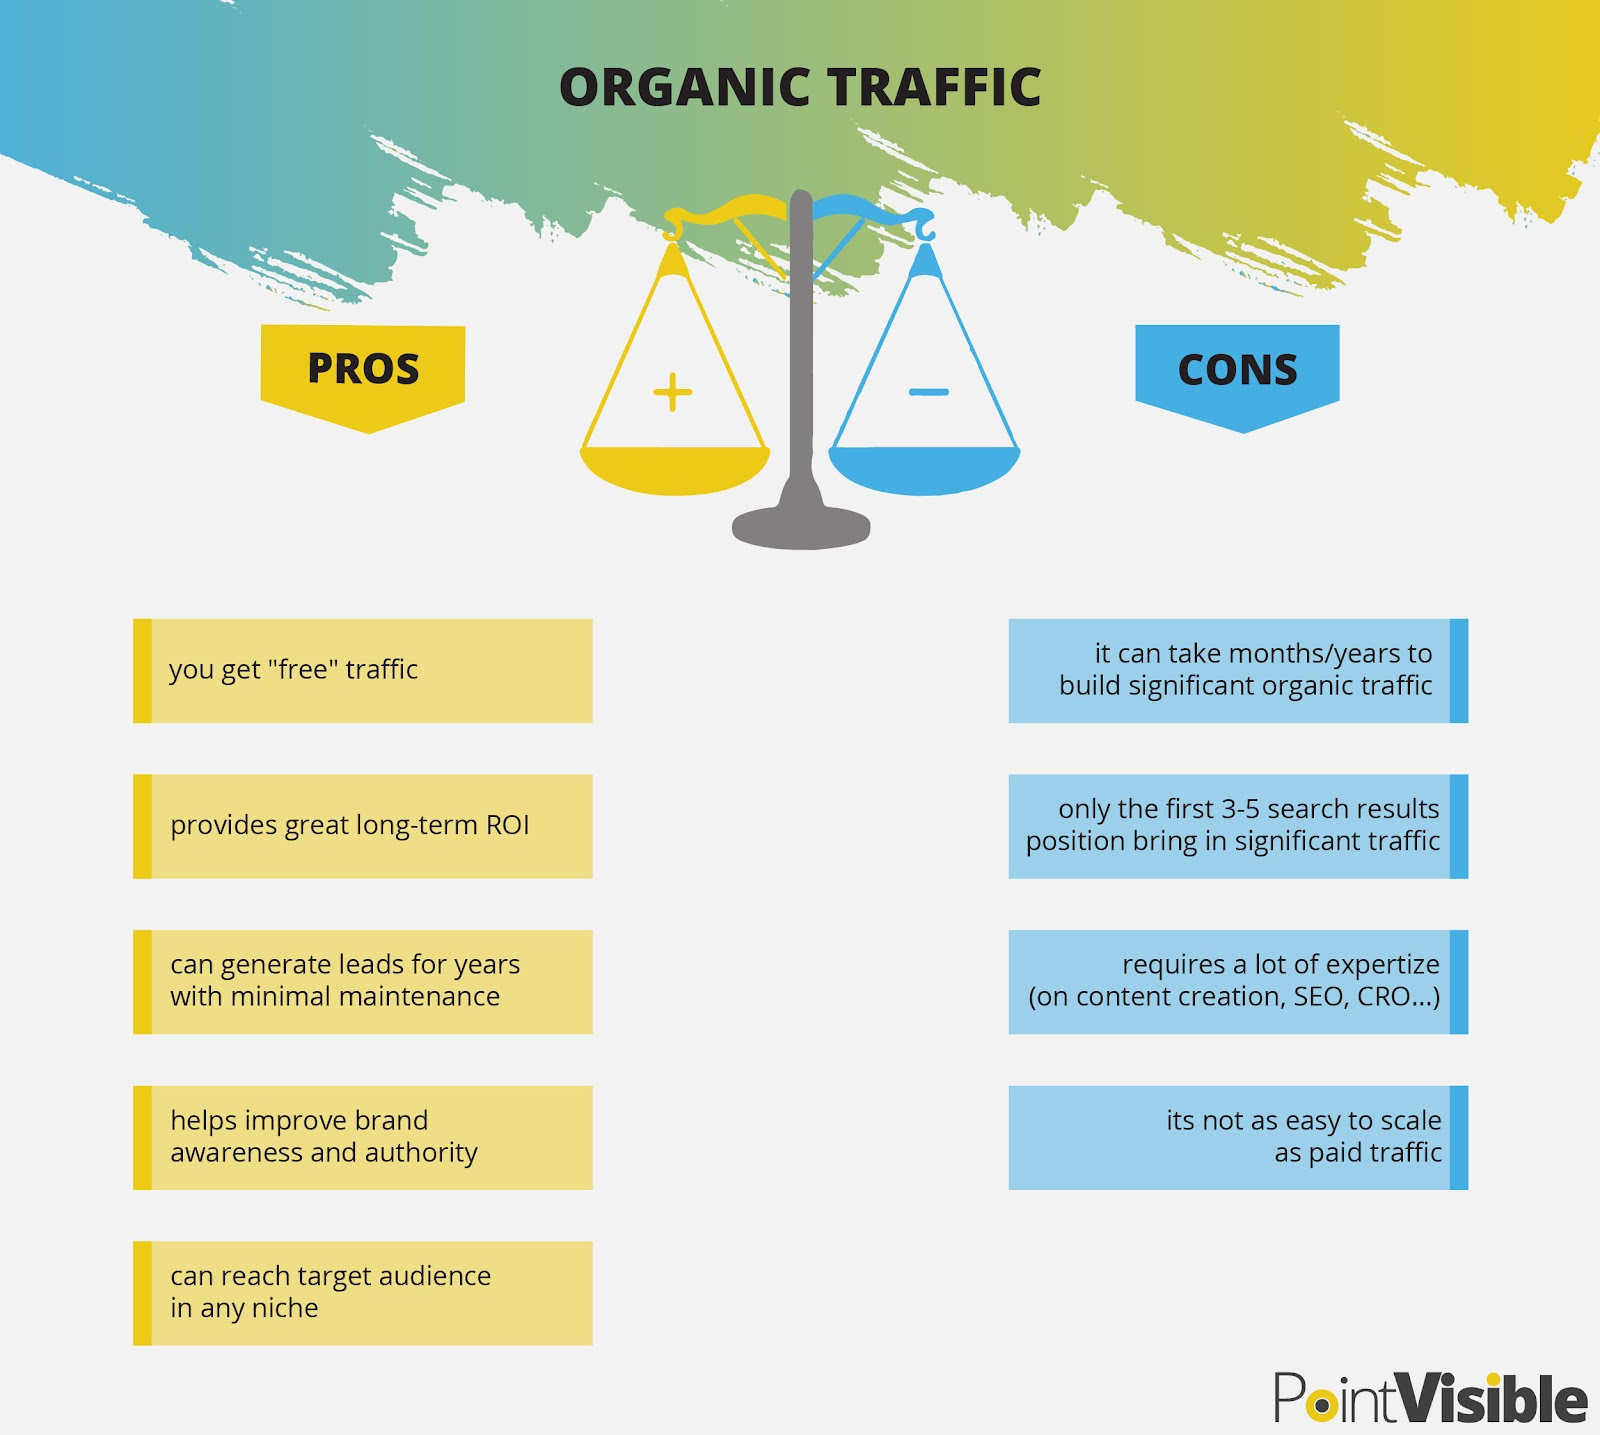 pros and cons of organic traffic